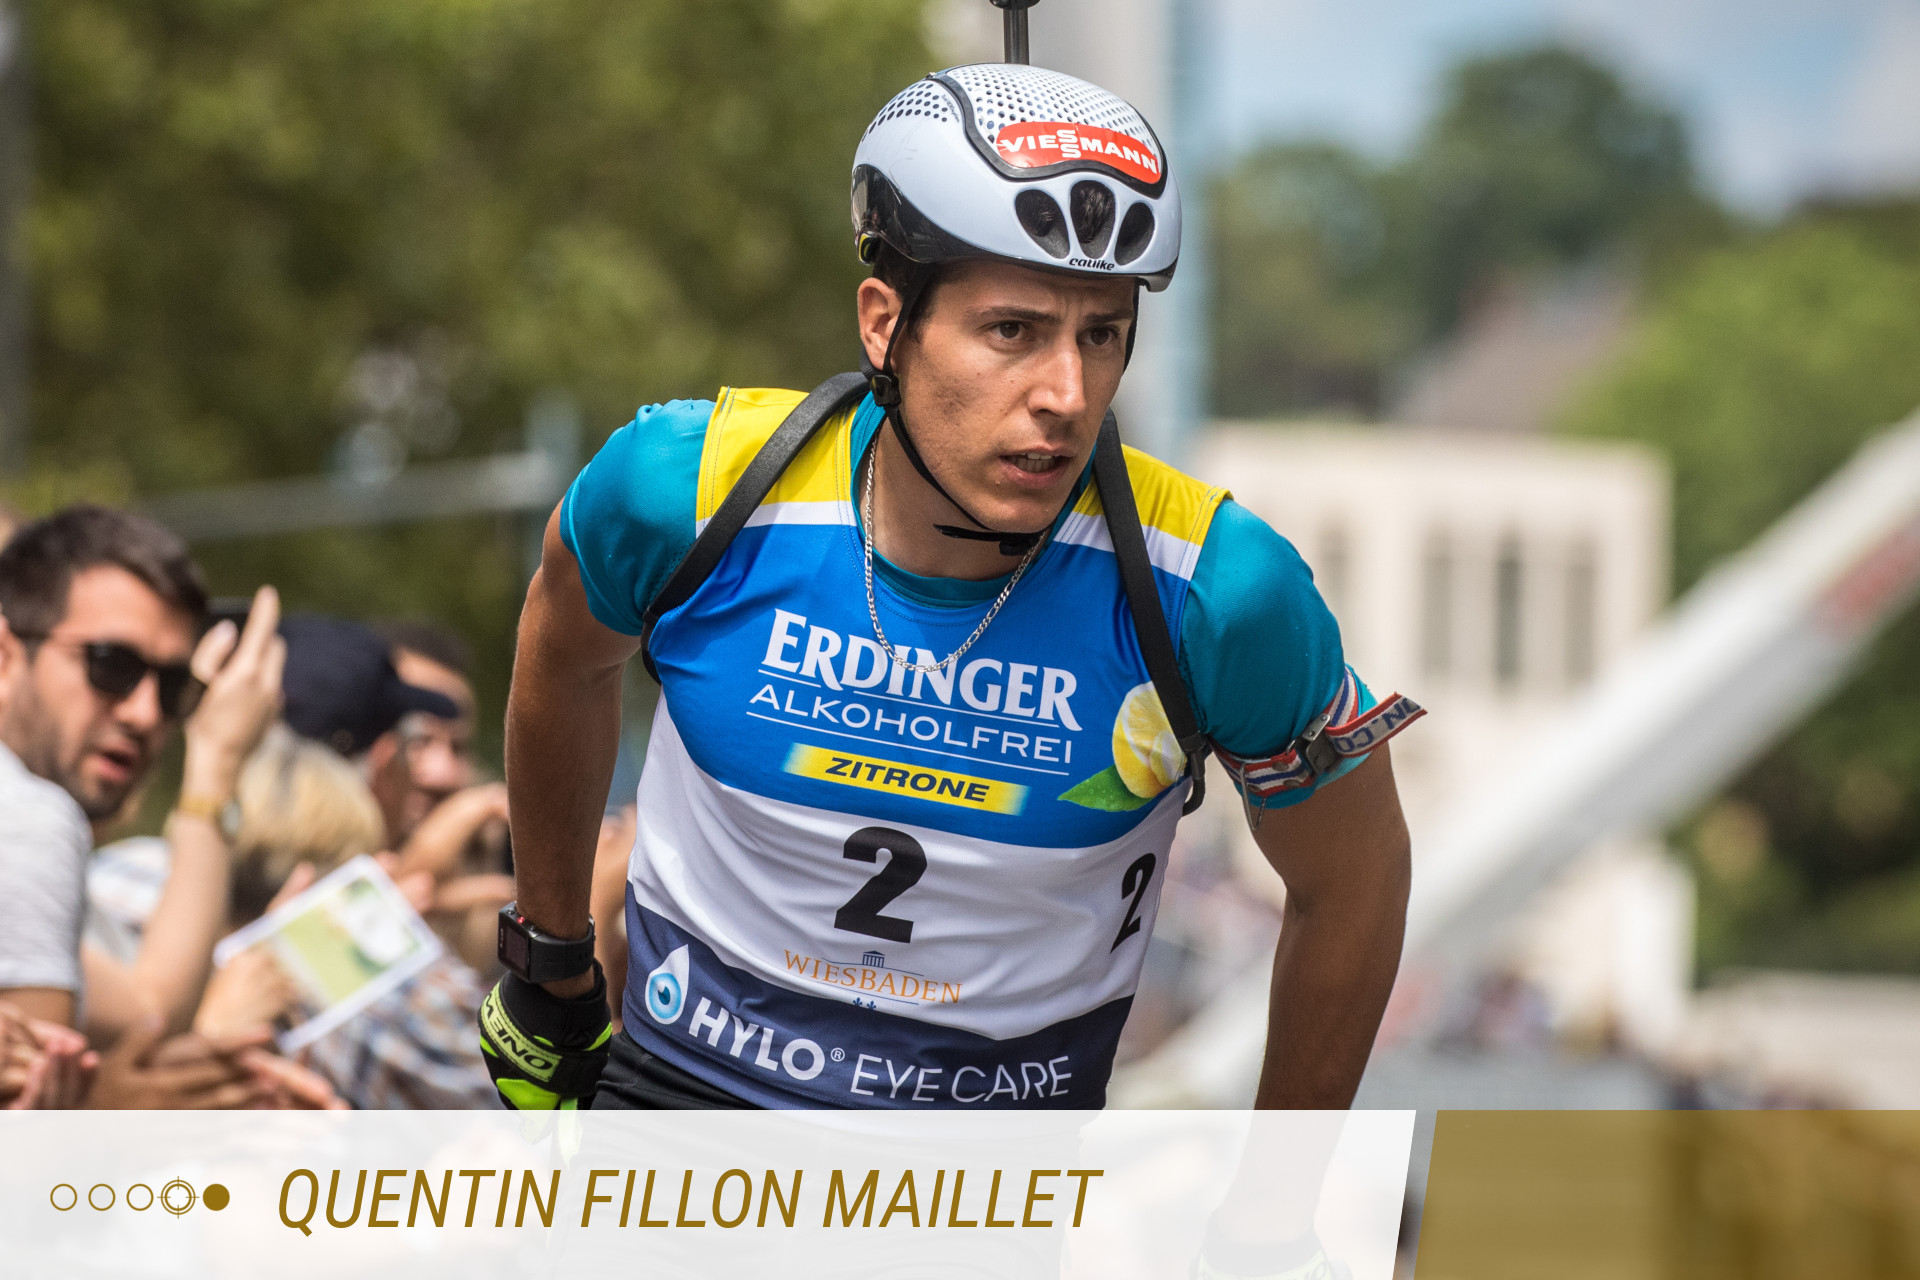 Athleten_QuentinFillonMaillet